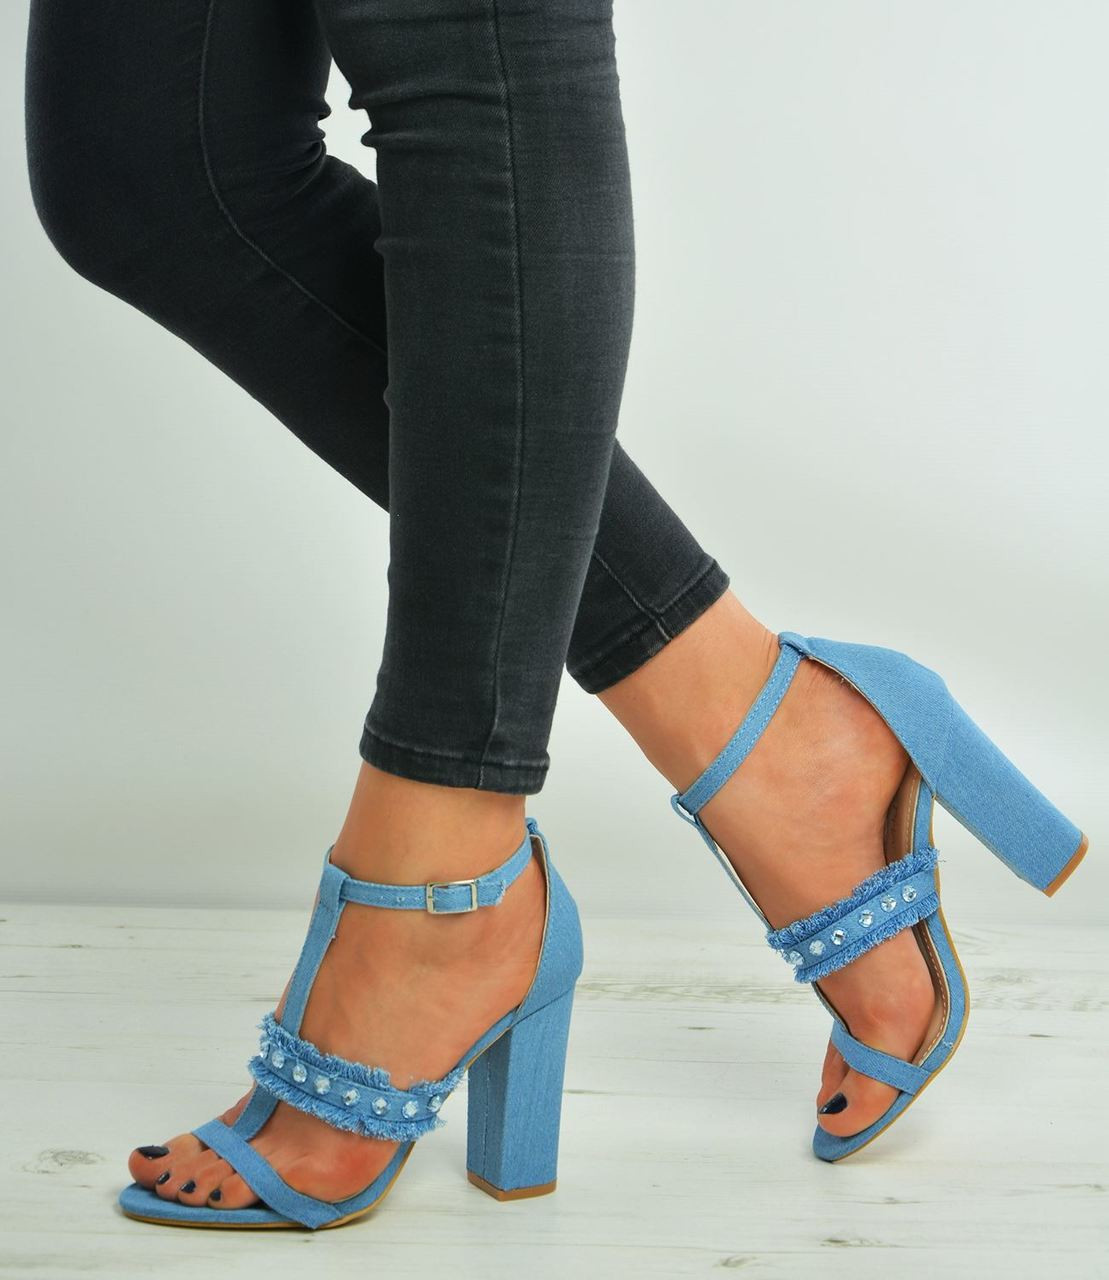 027c117afaa82d New Womens Ladies Studded Ankle Strap Denim Block Heel Sandals Shoes Size  Uk 3-8